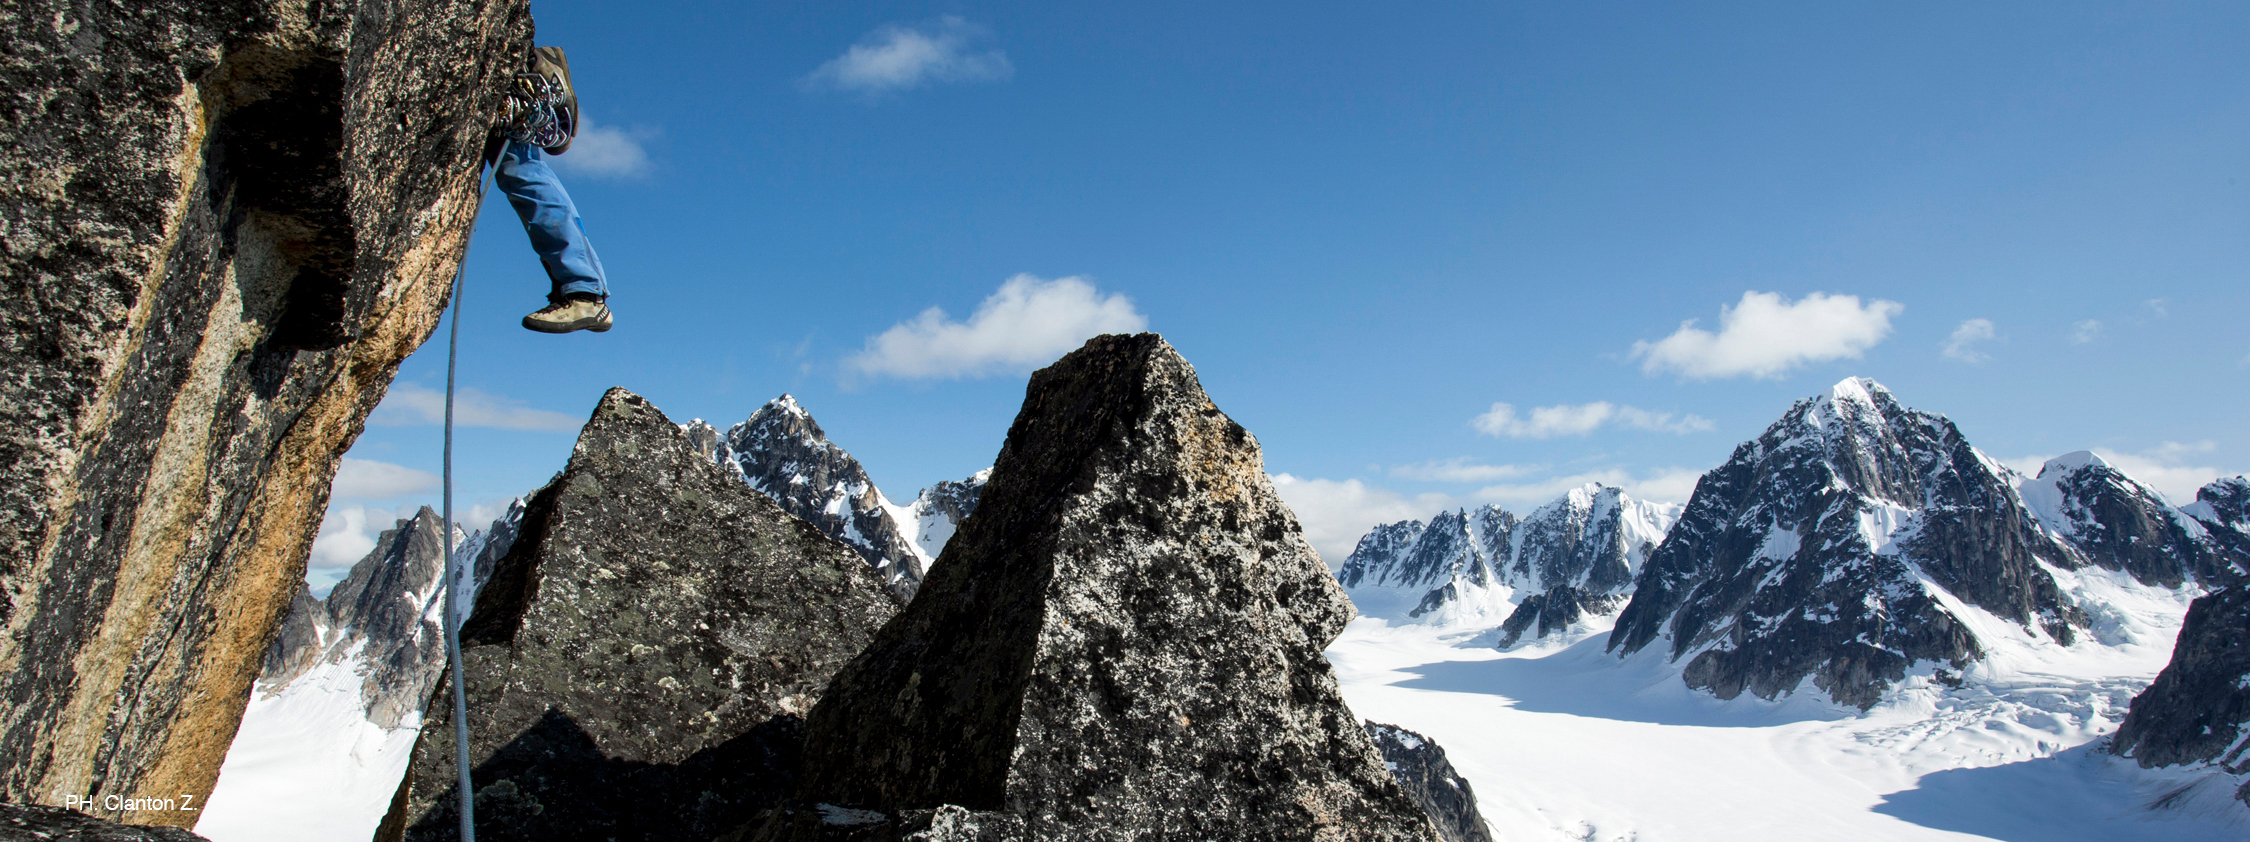 James Gustafson on the first ascent of The Two Towers on the The Dragon's Spine in the Alaska Range